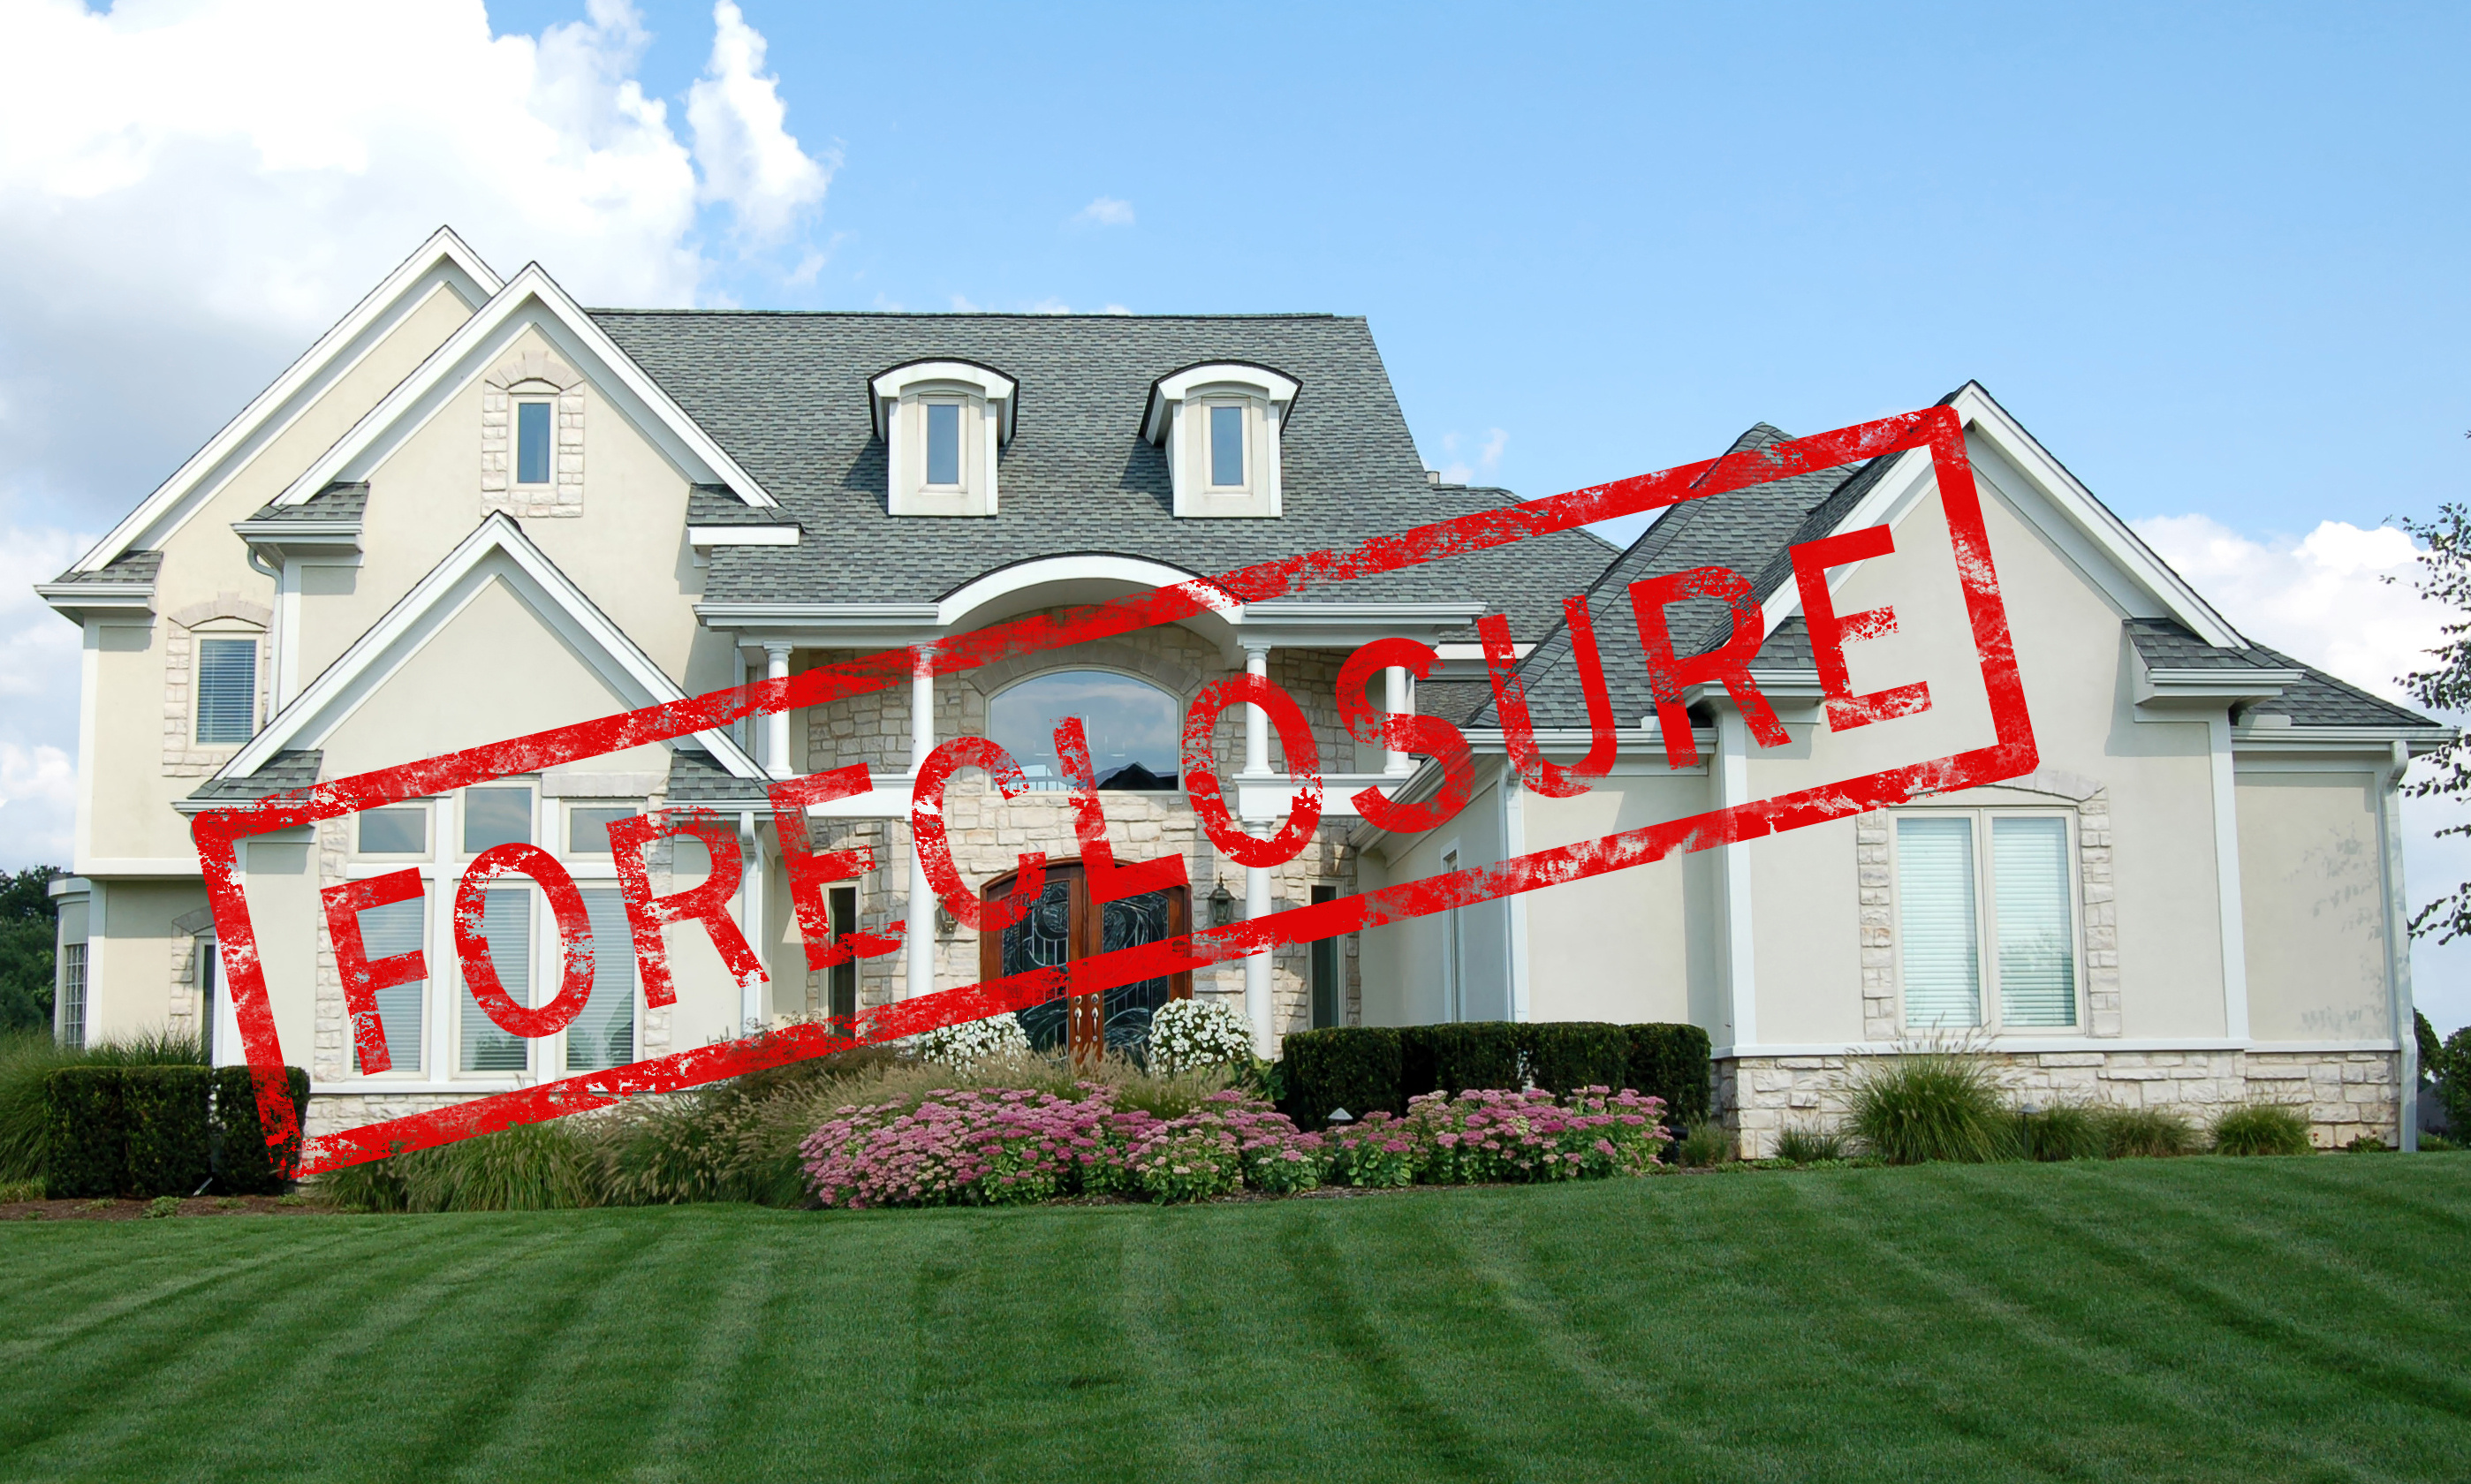 Call Castle Appraisal Service to order valuations regarding Montgomery foreclosures